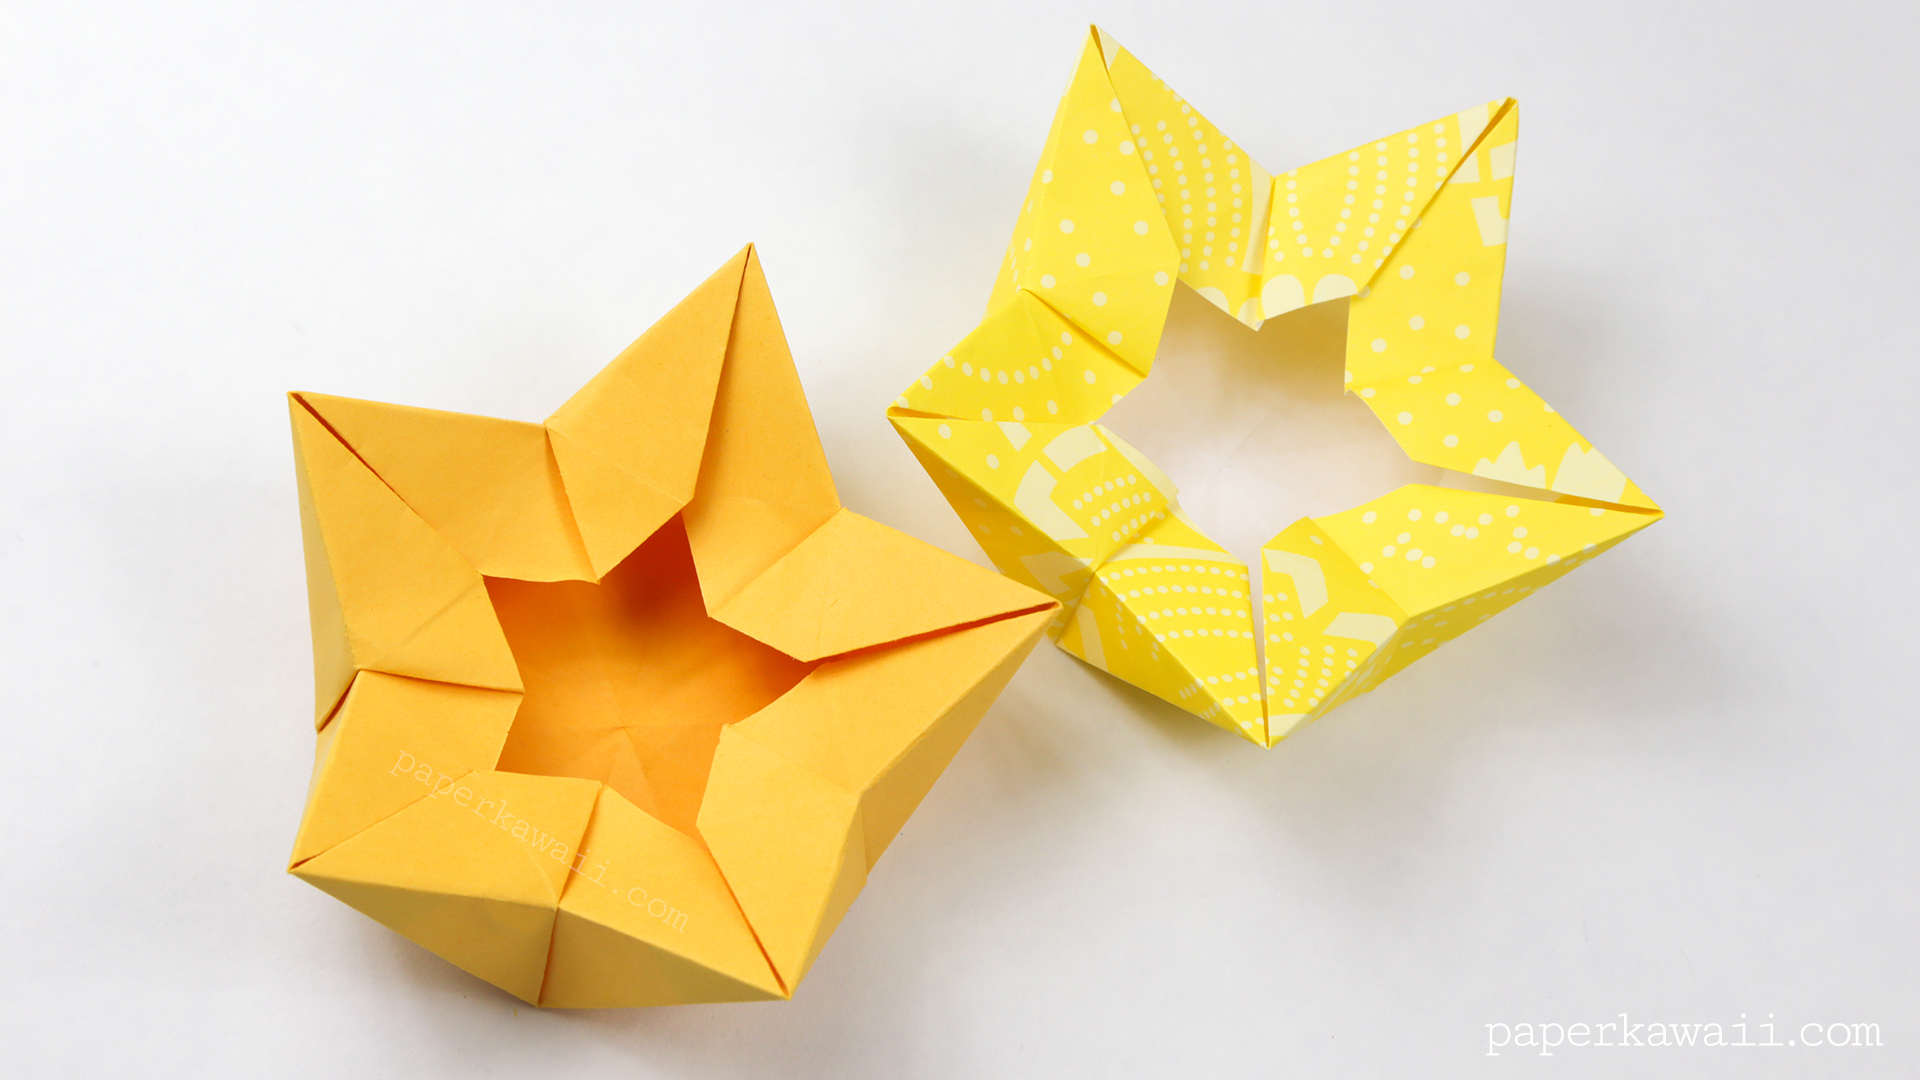 star flower origami diagram yamaha 200 blaster wiring crown bowl tutorial paper kawaii